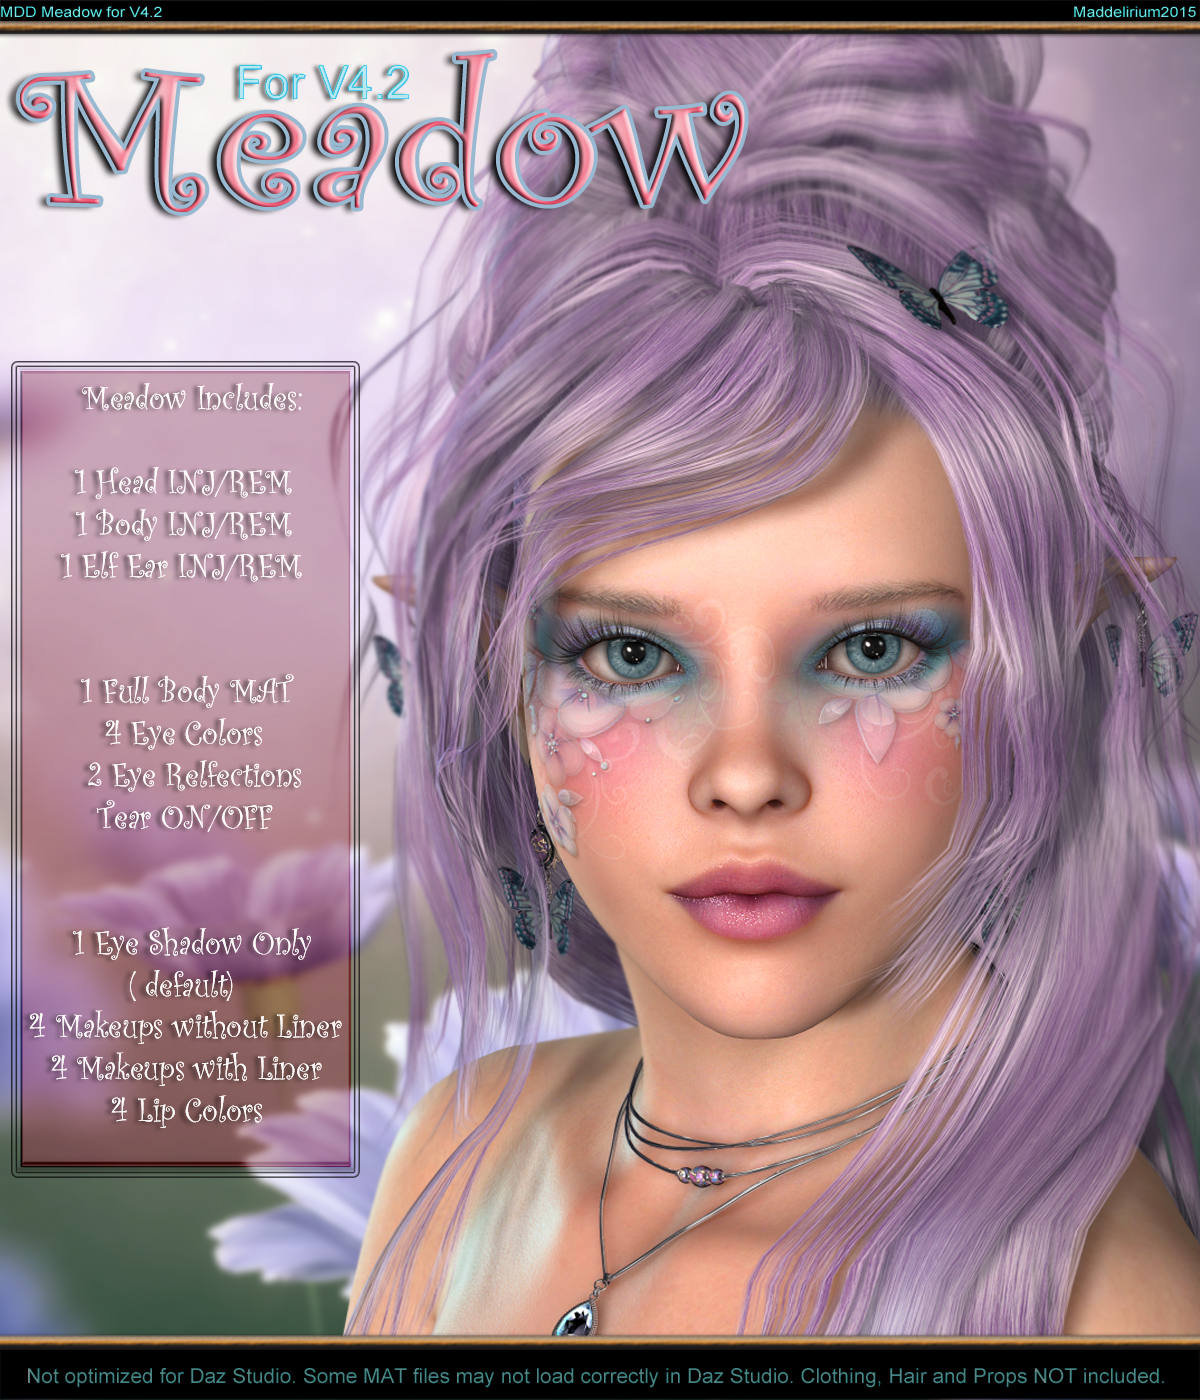 MDD Meadow for V4.2